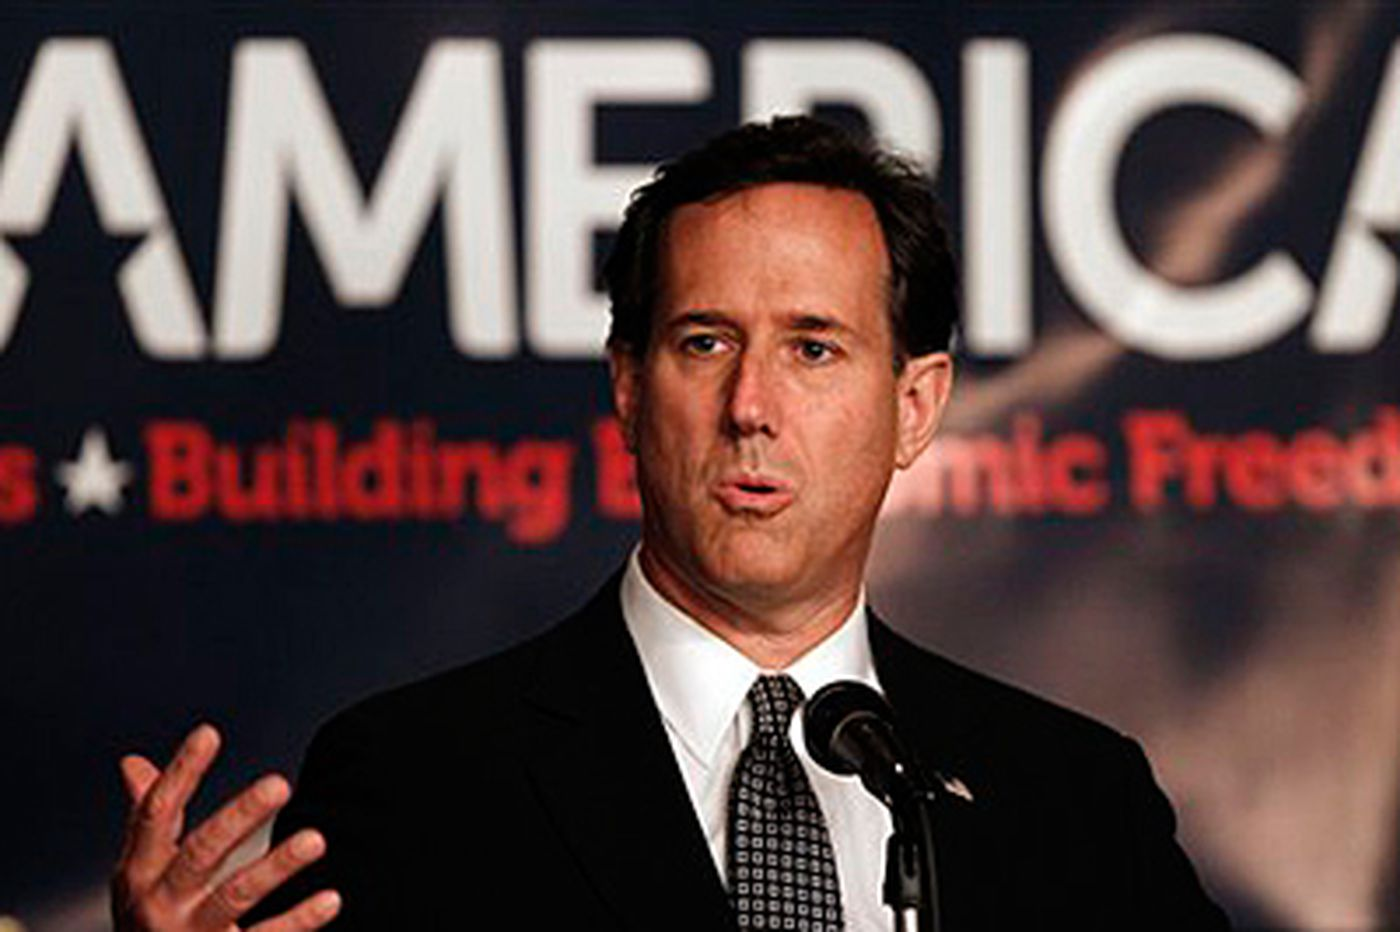 How would America change in a Santorum administration?